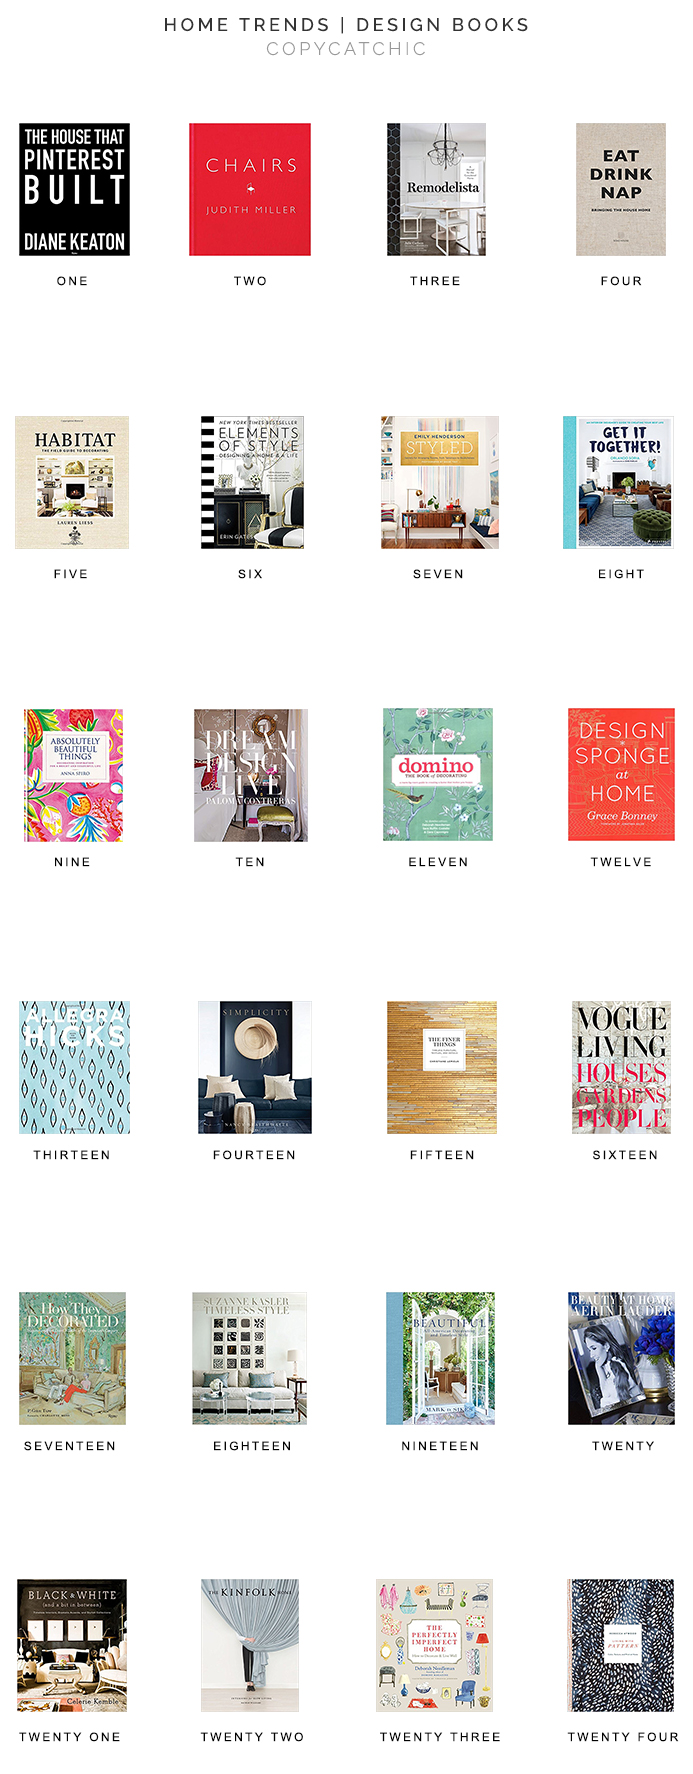 interior design books for less, copycatchic luxe living for less, budget home decor and design, daily finds, home trends, sales, budget travel and room redos